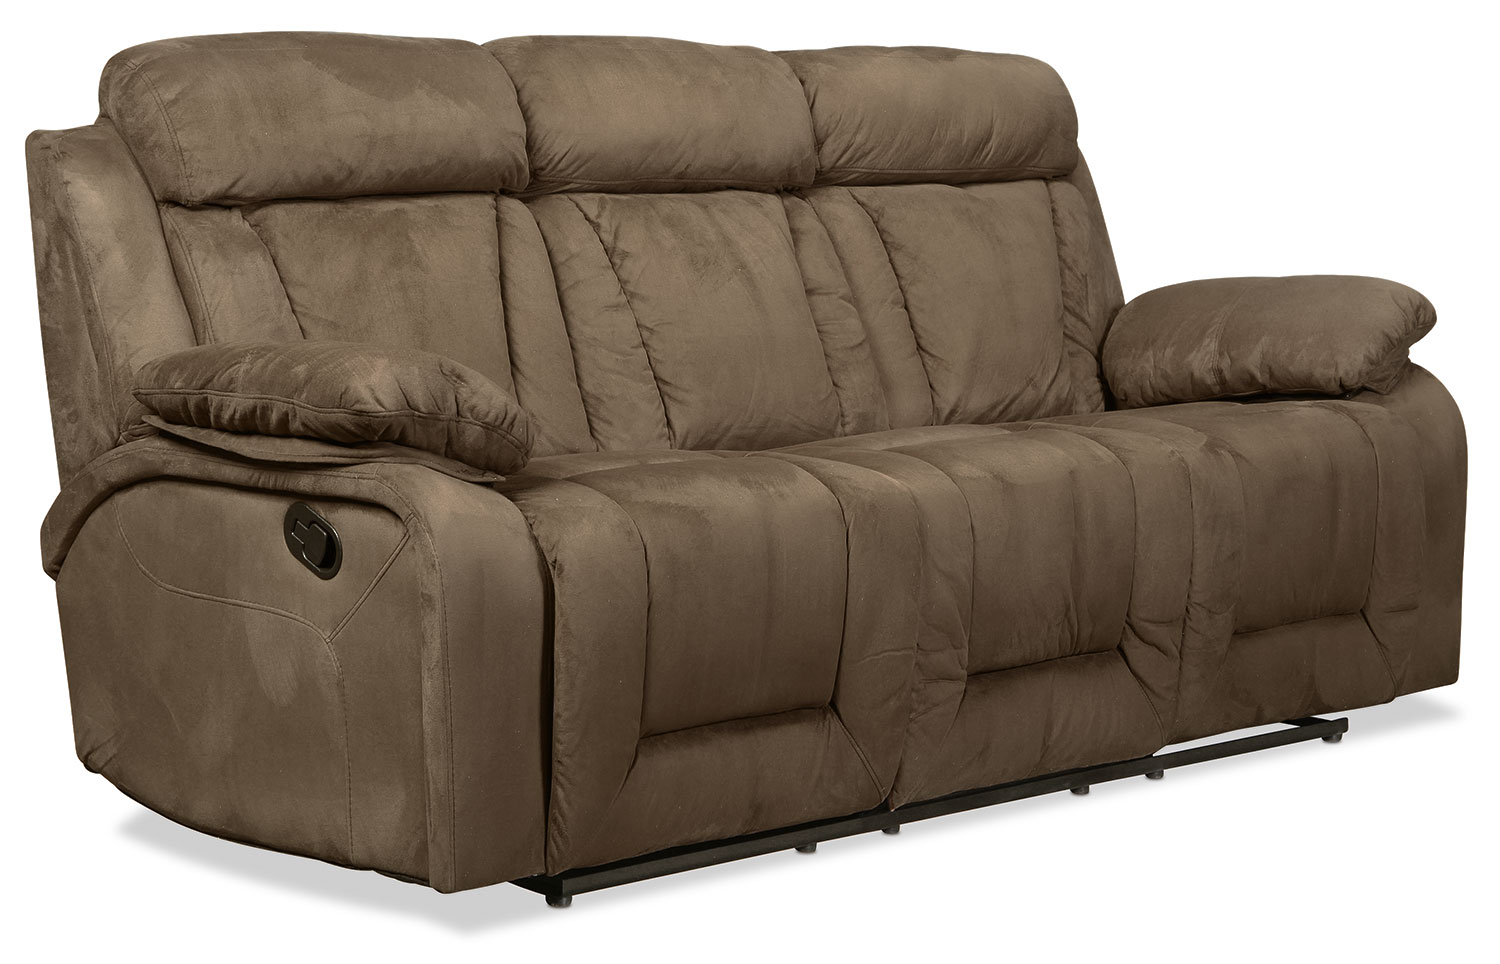 Forina Reclining Sofa - Latte